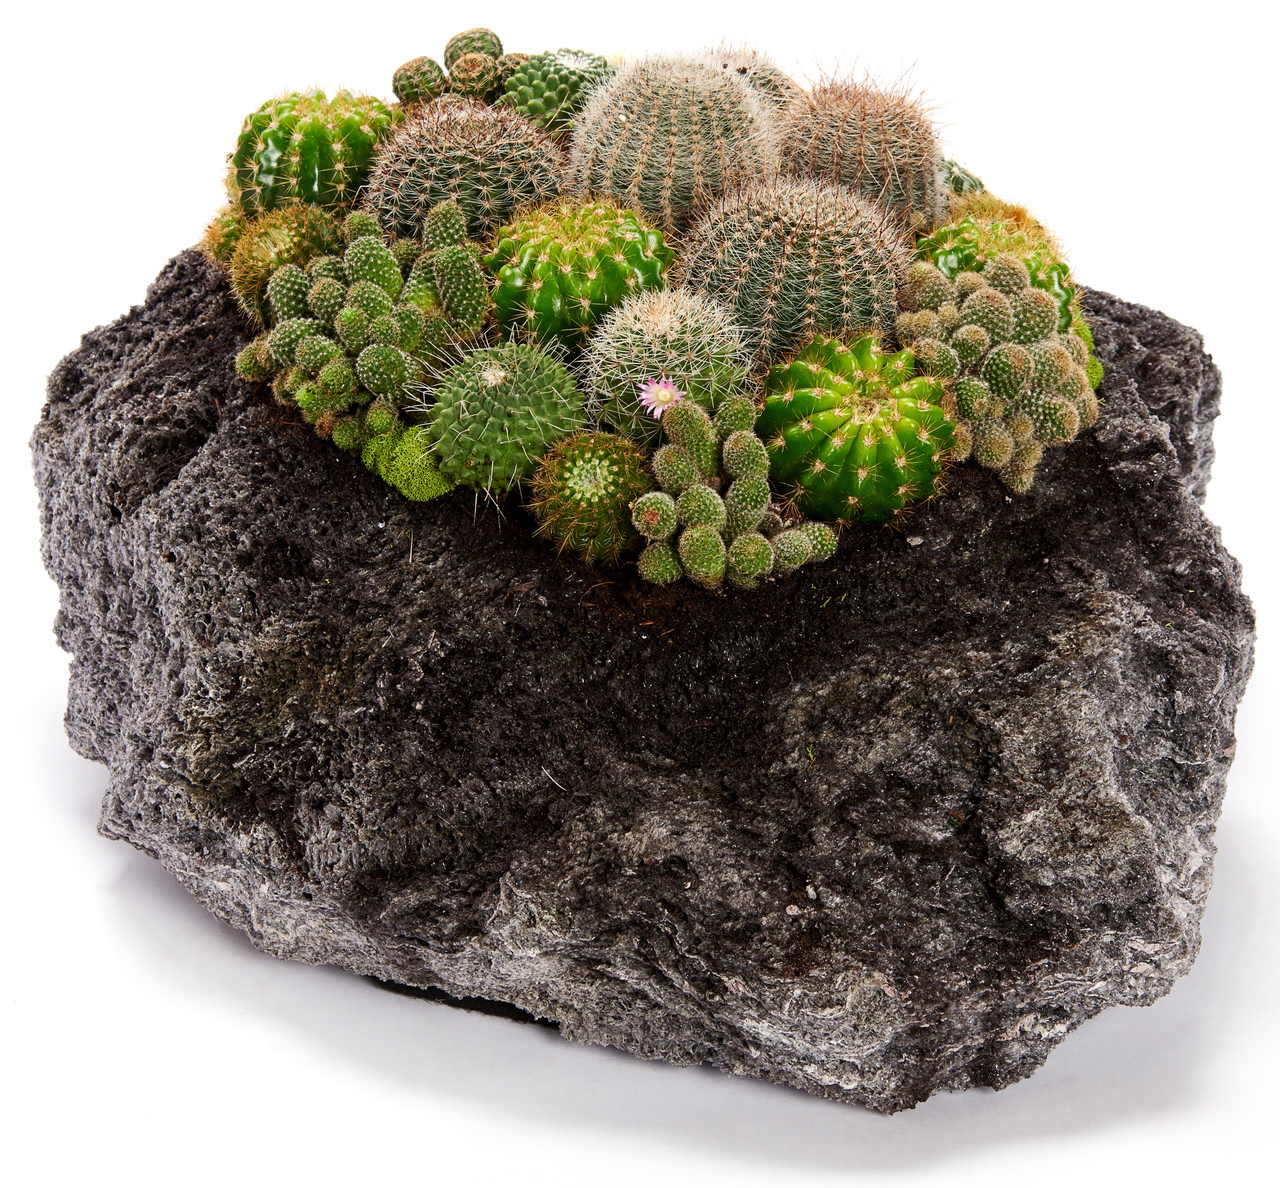 The Symbolic Meaning Behind Succulent Arrangements - Plant The Future